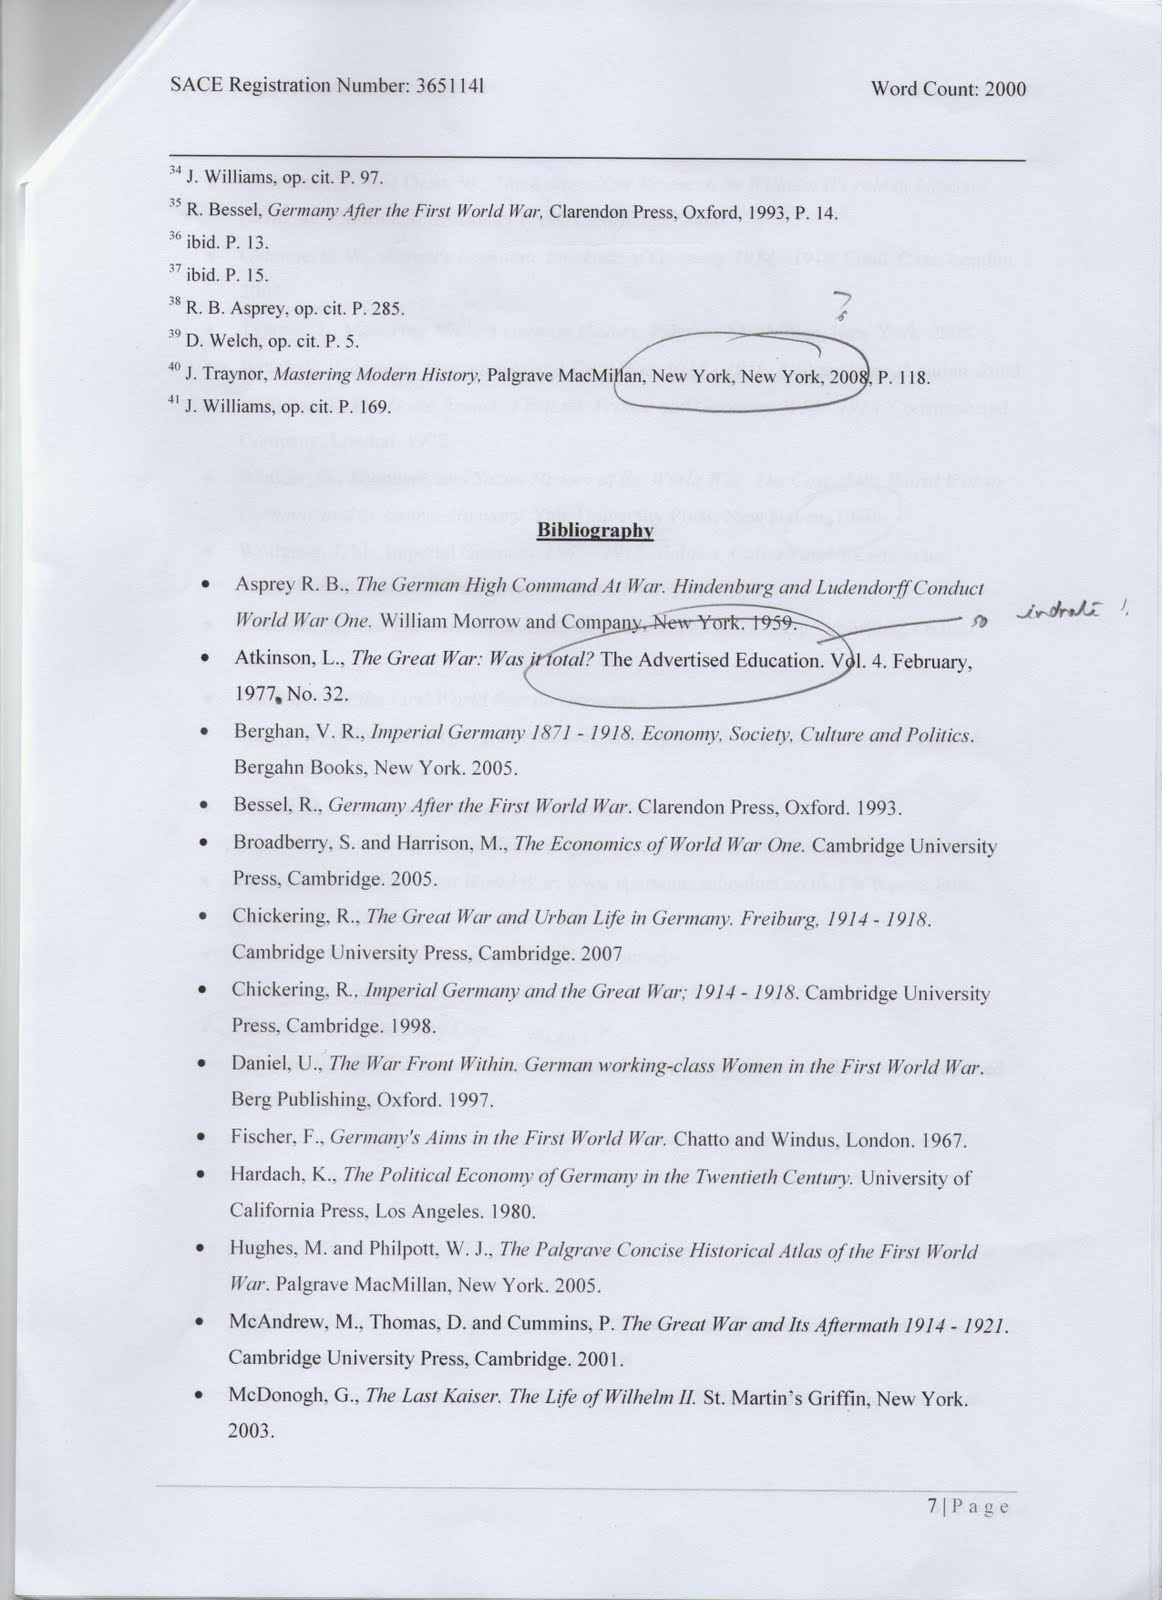 007 Uchicago Essay Questions Example Unique How To Answer 2017 University Of Chicago Full